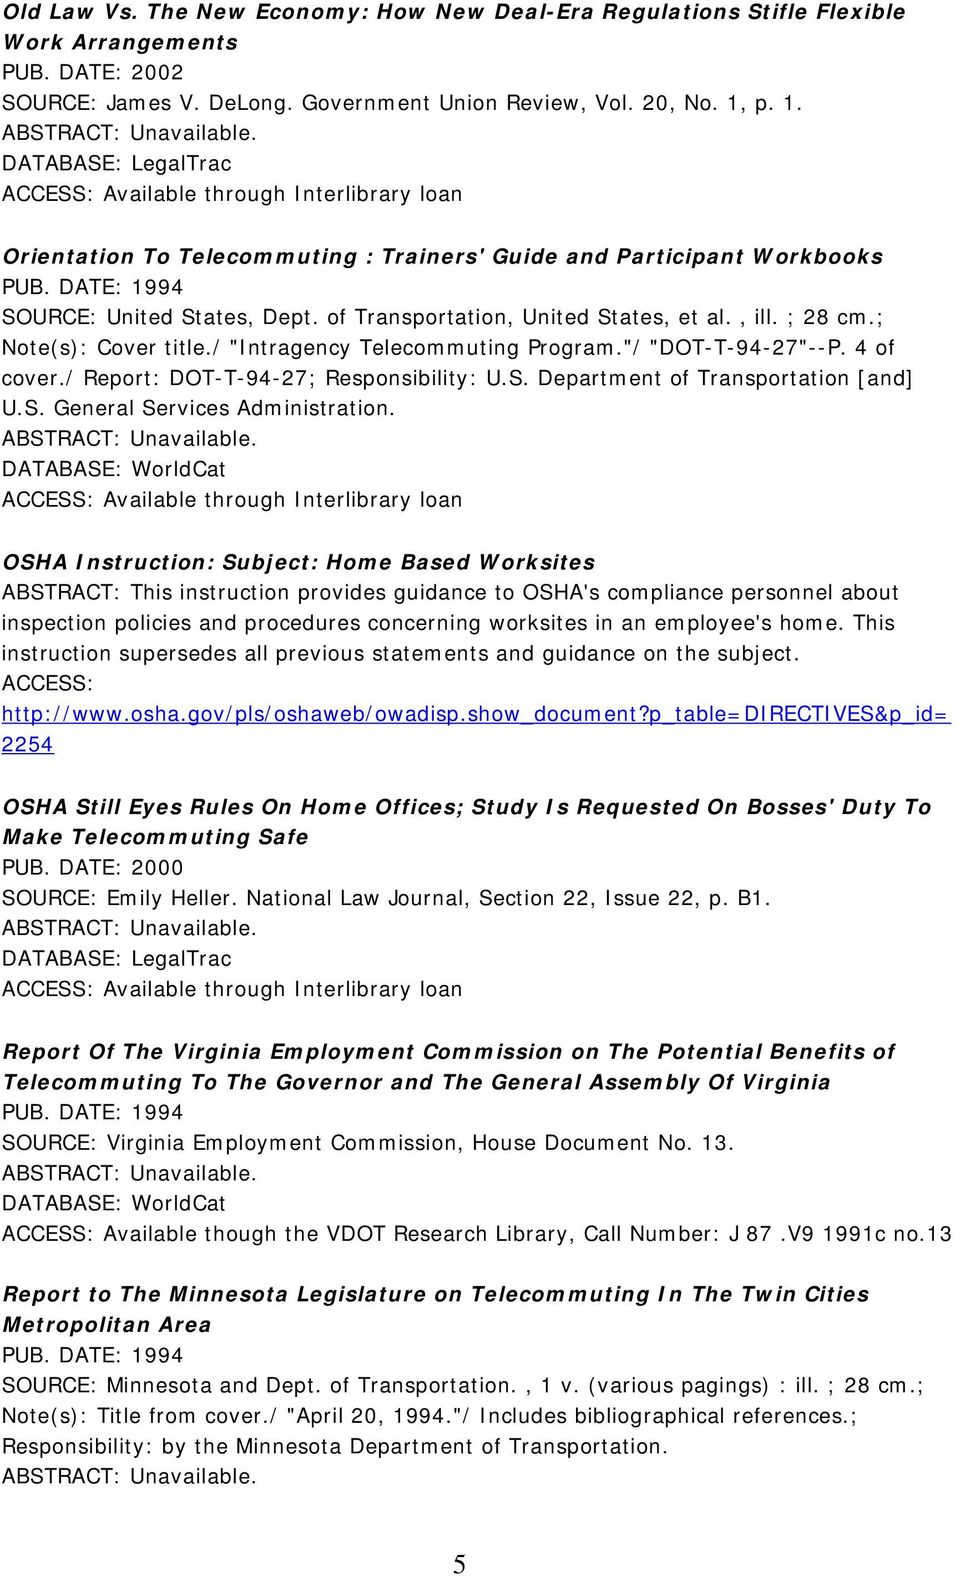 "; Note(s): Cover title./ ""Intragency Telecommuting Program.""/ ""DOT-T-94-27""--P. 4 of cover./ Report: DOT-T-94-27; Responsibility: U.S. Department of Transportation [and] U.S. General Services Administration."